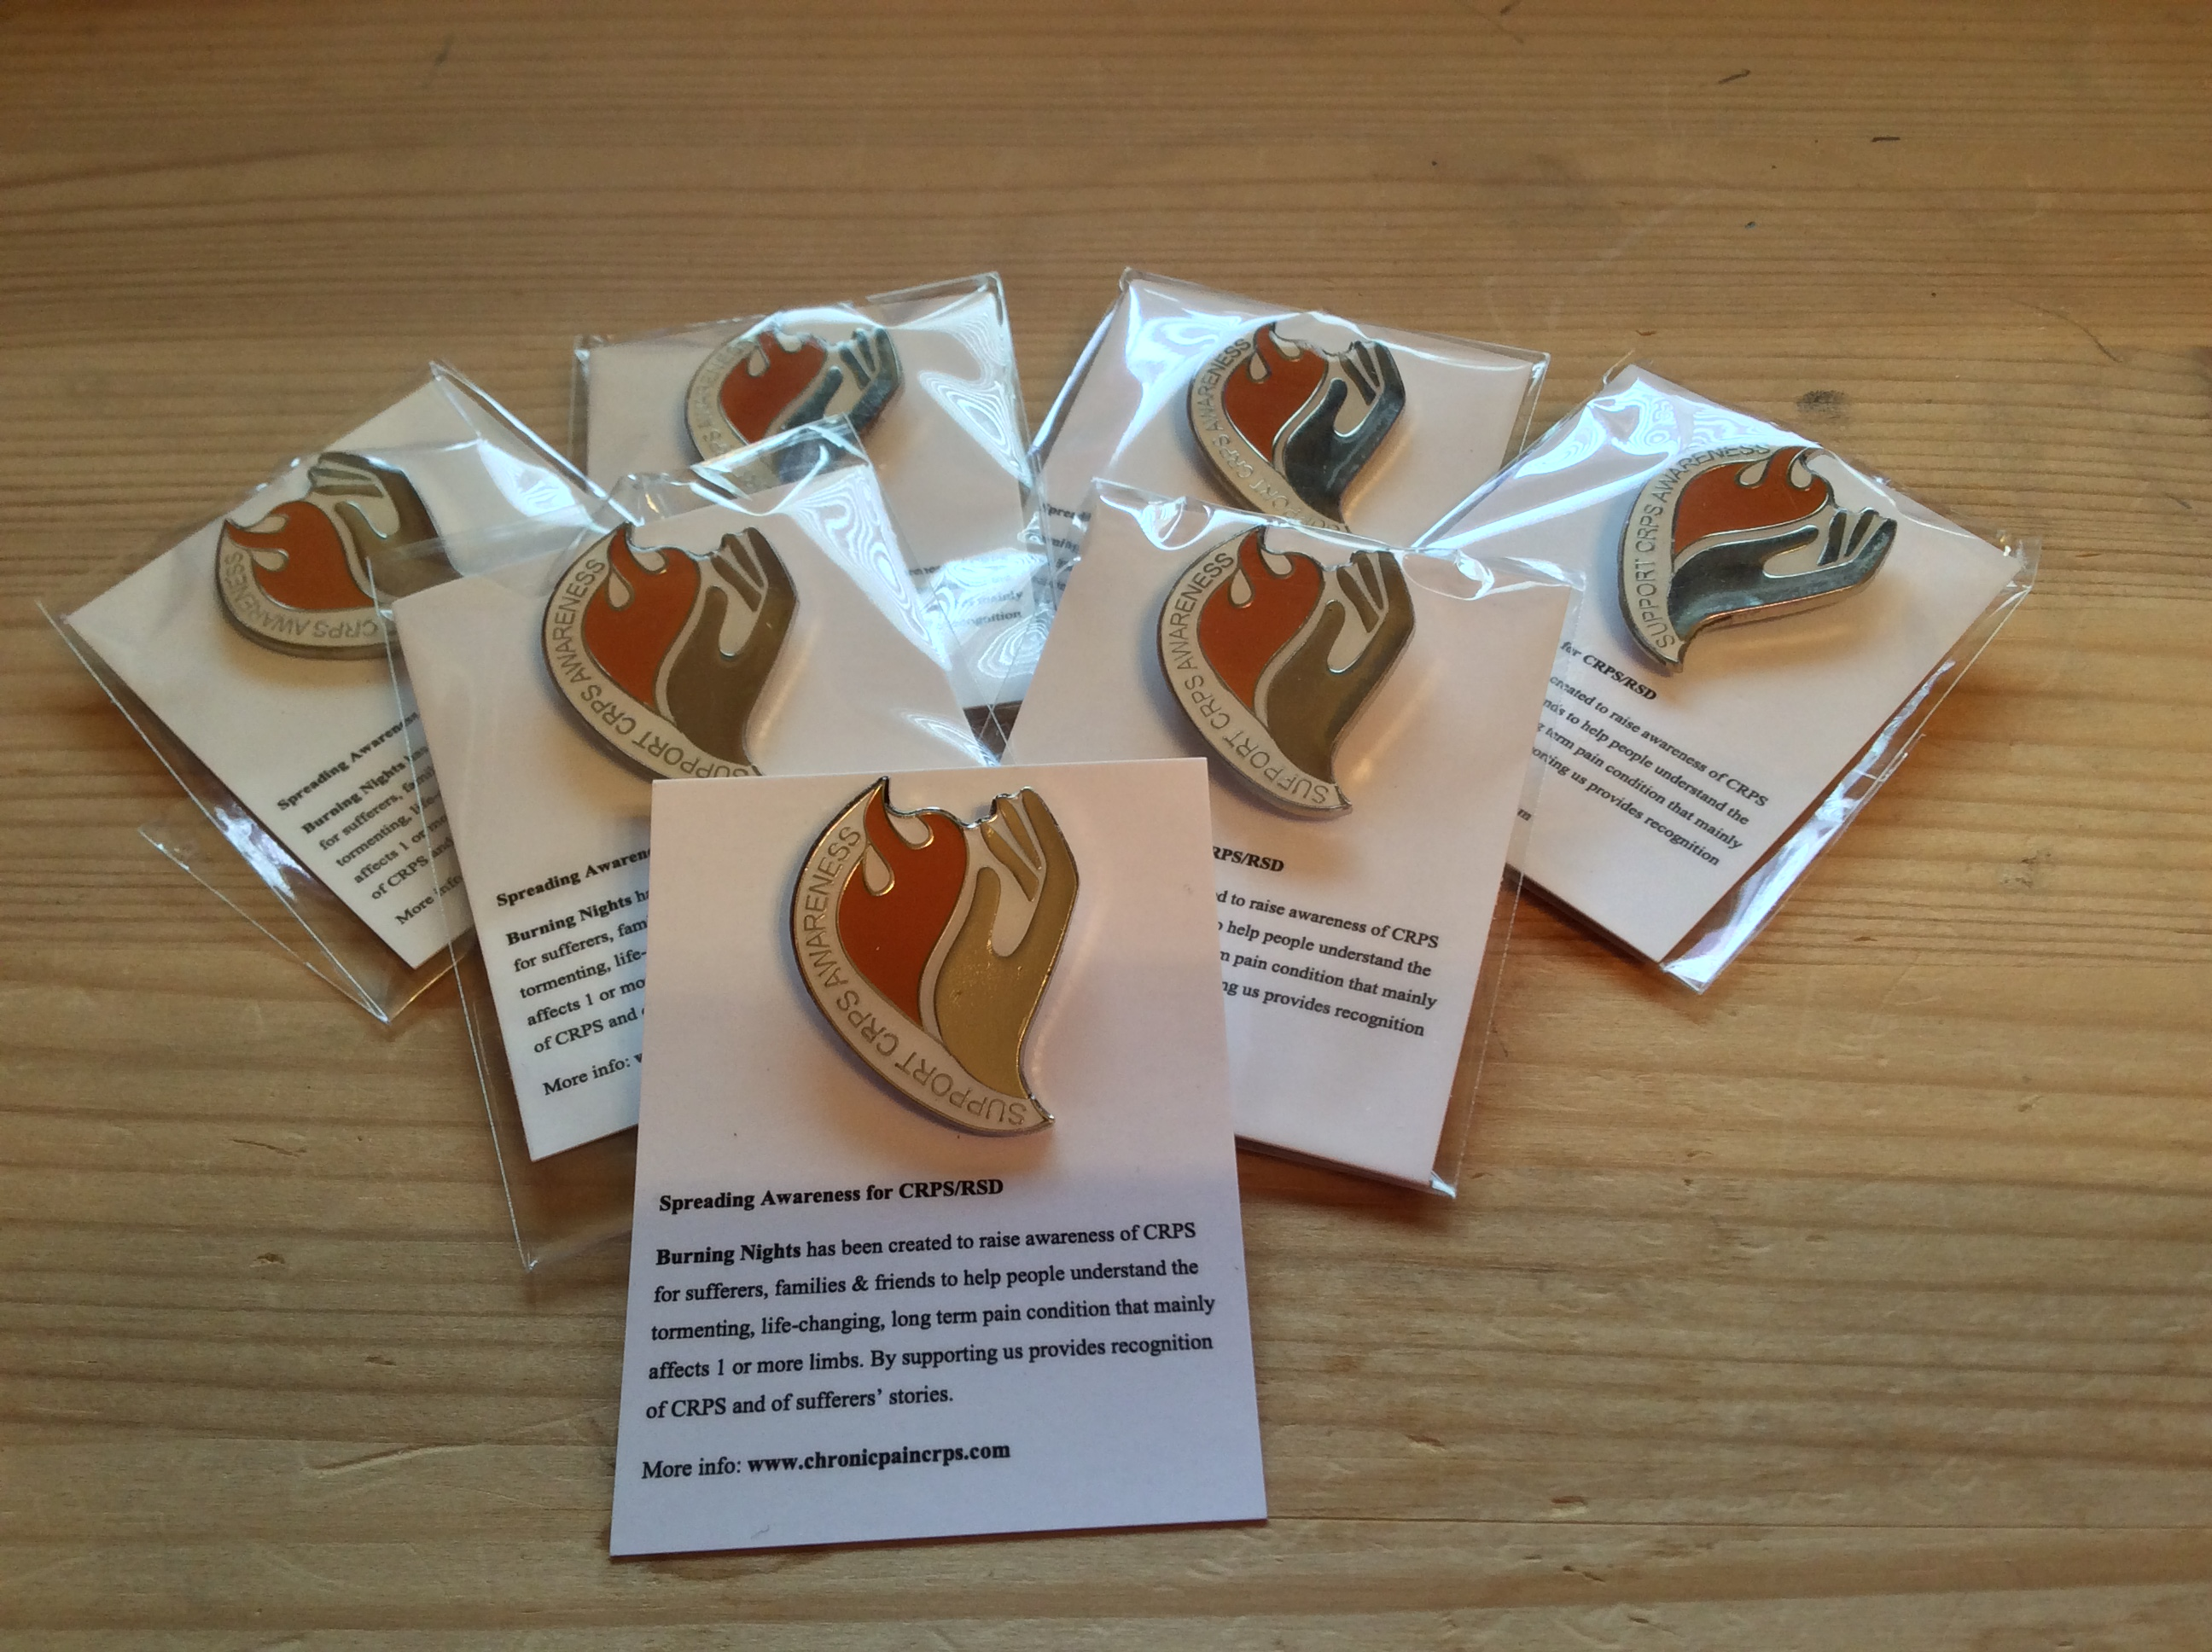 Support CRPS/RSD Awareness Enamel Badges